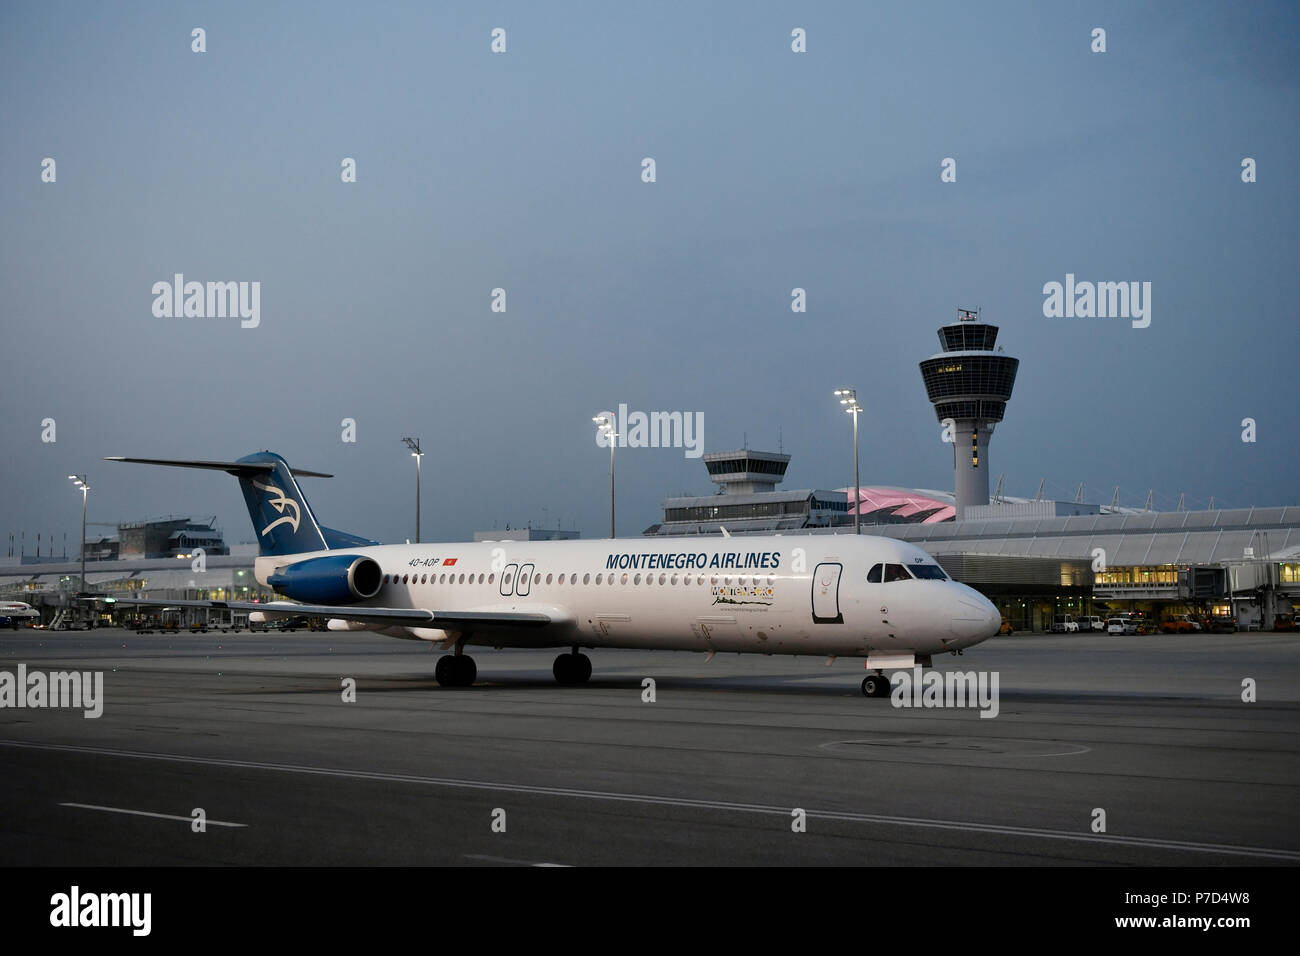 Montenegro Airlines, Fokker, F100, taxiing in front of Terminal 1 with tower, at dusk, Munich Airport, Upper Bavaria, Bavaria Stock Photo